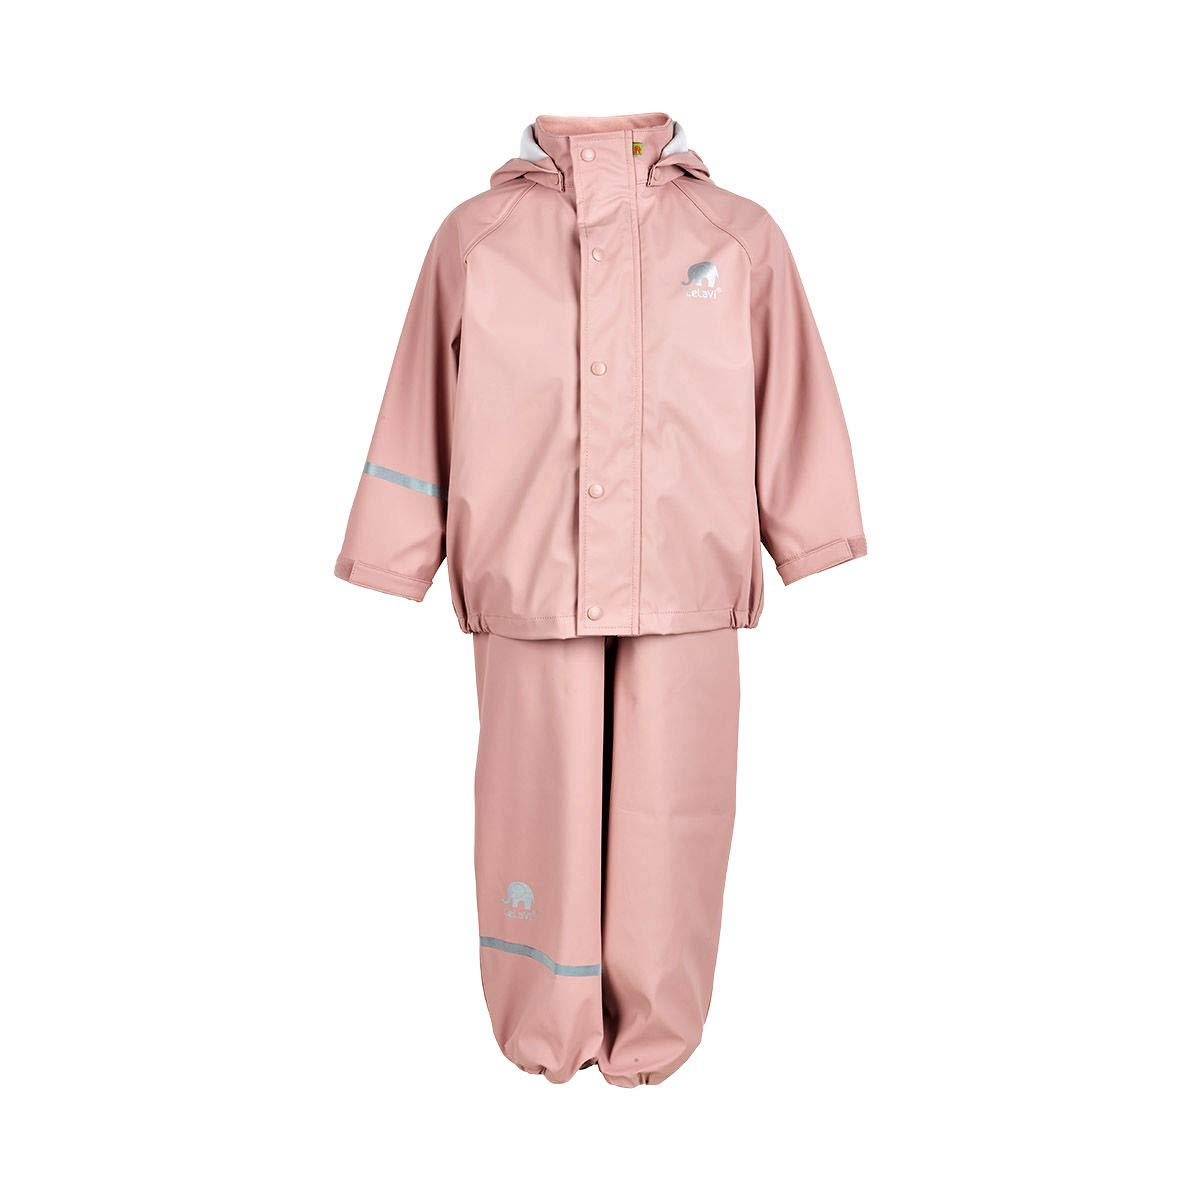 Kids 2 Pcs Rain Set - Jacket & Pants/or Dungarees - 20 Colors (2-9 Years) Misty Rose by CeLaVi